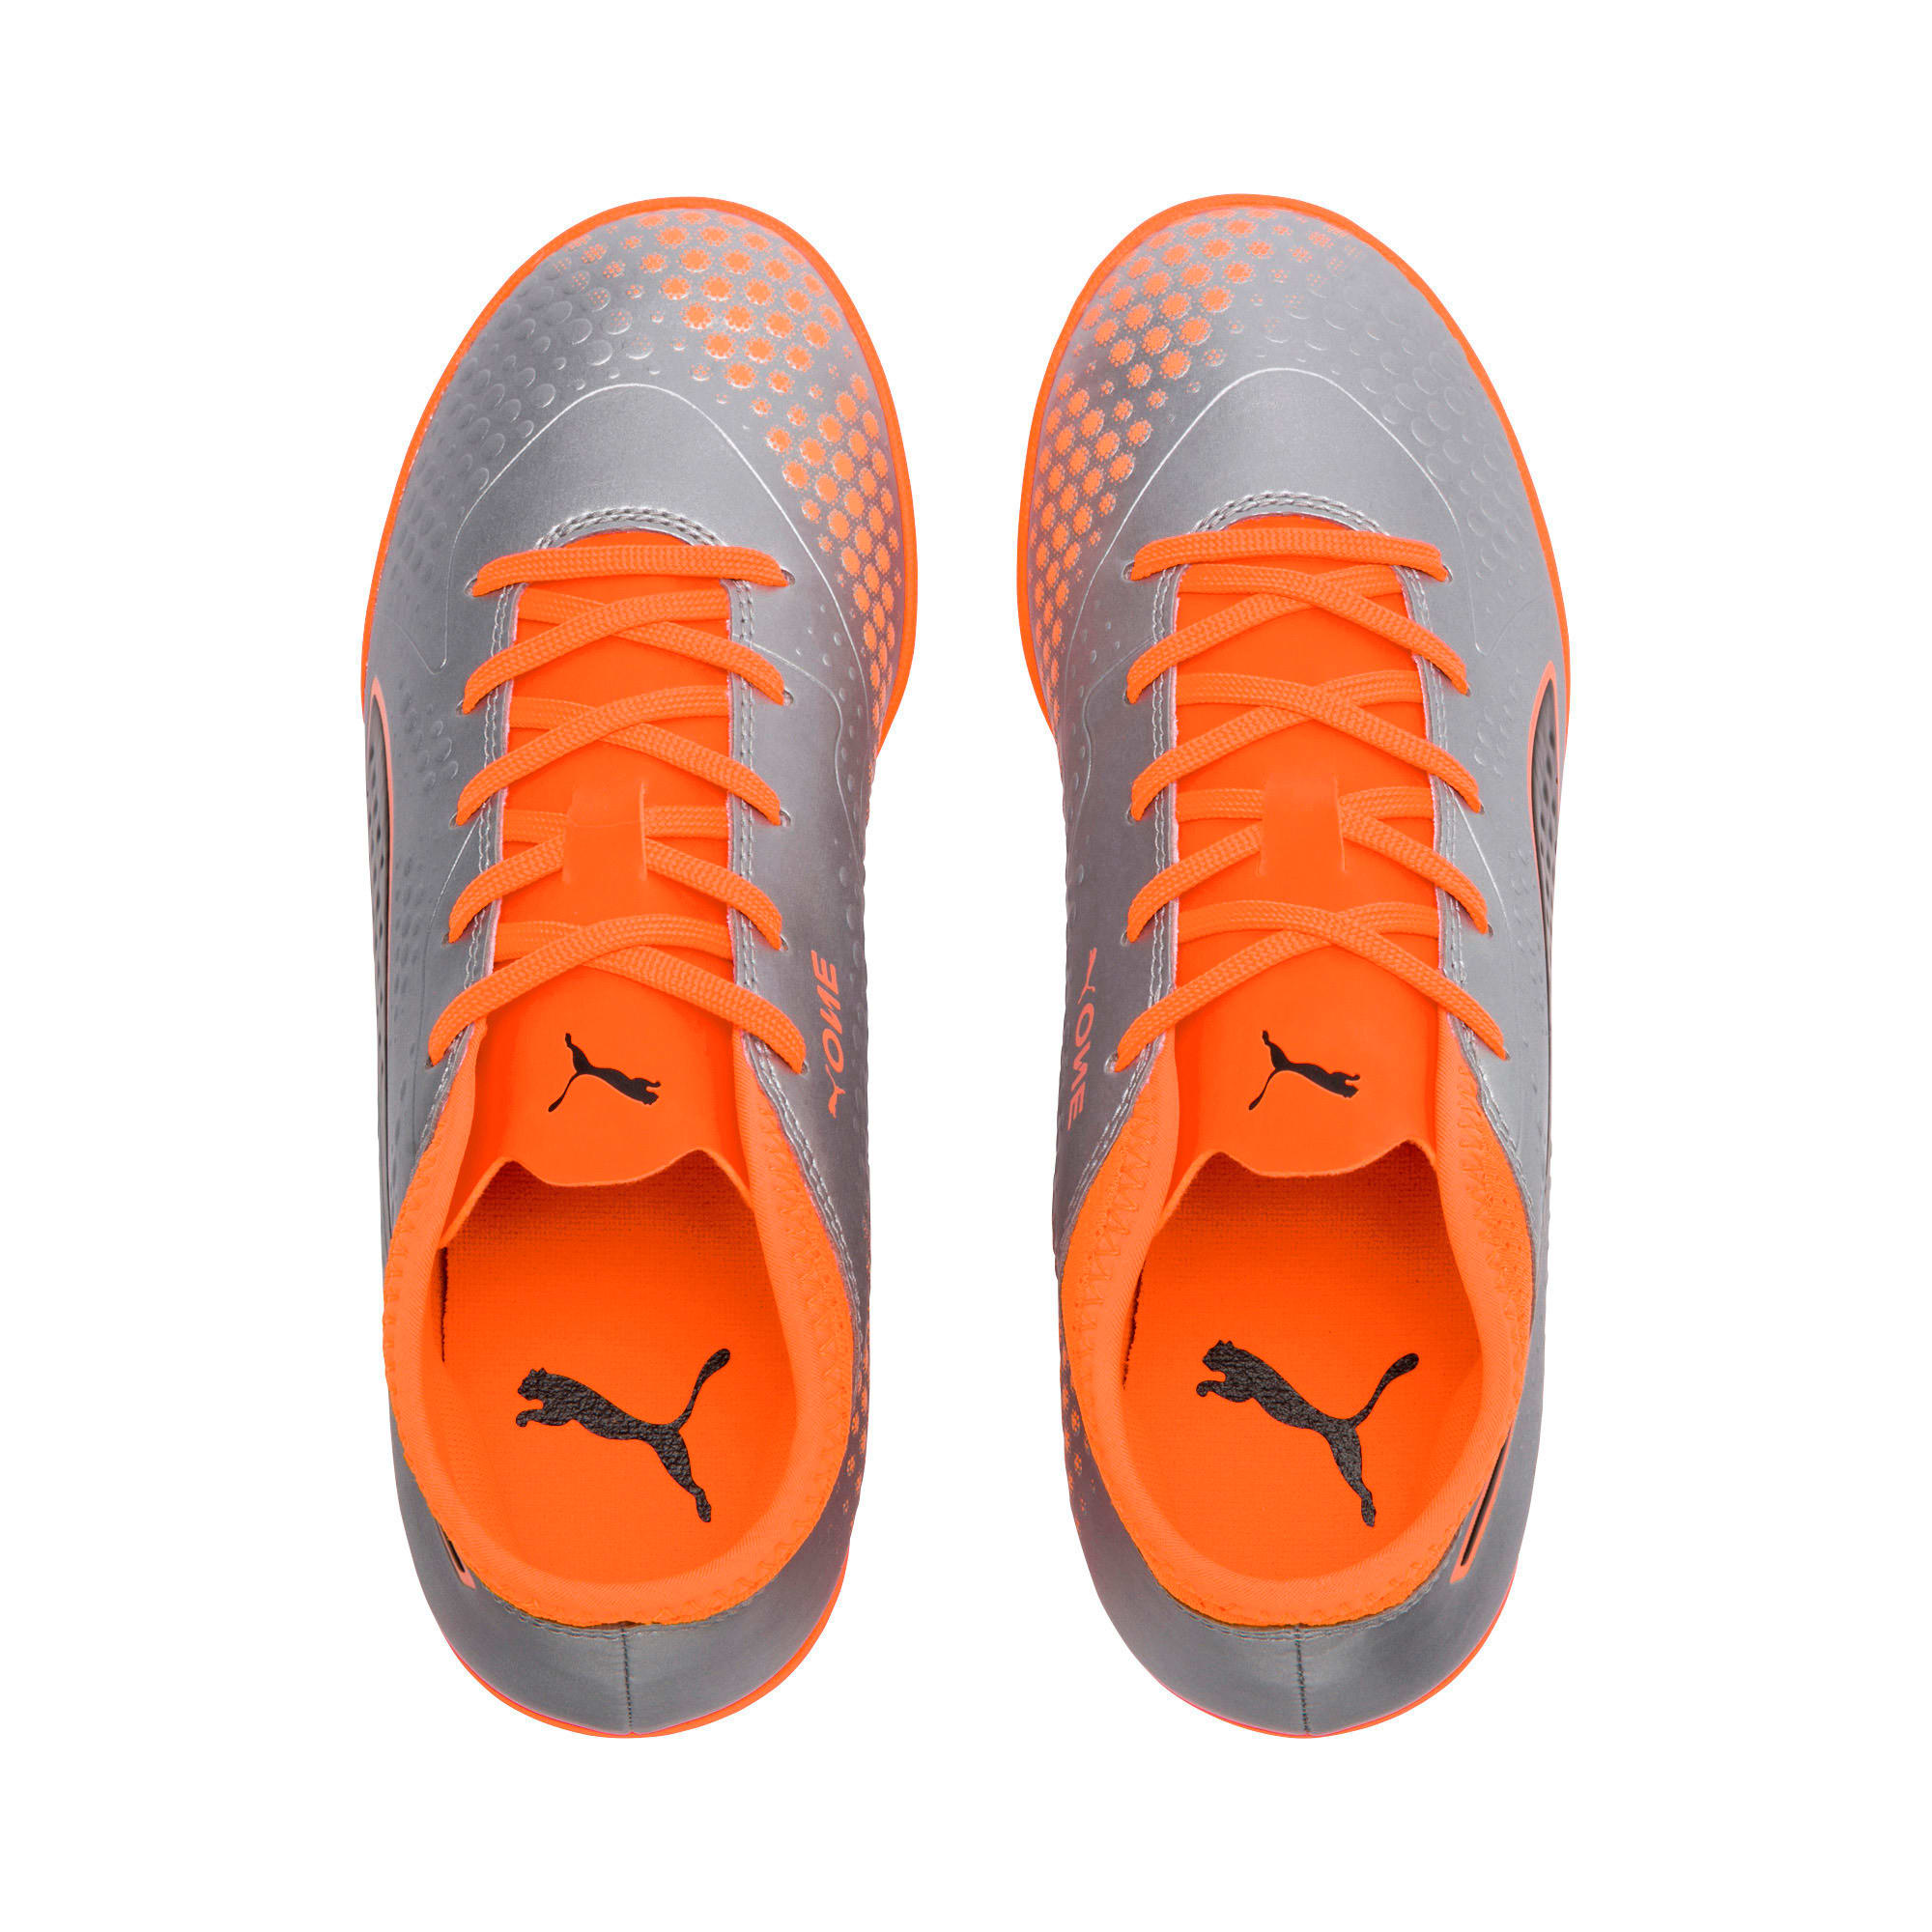 Thumbnail 6 of PUMA ONE 4 Synthetic IT Kids' Football Shoes, Silver-Orange-Black, medium-IND